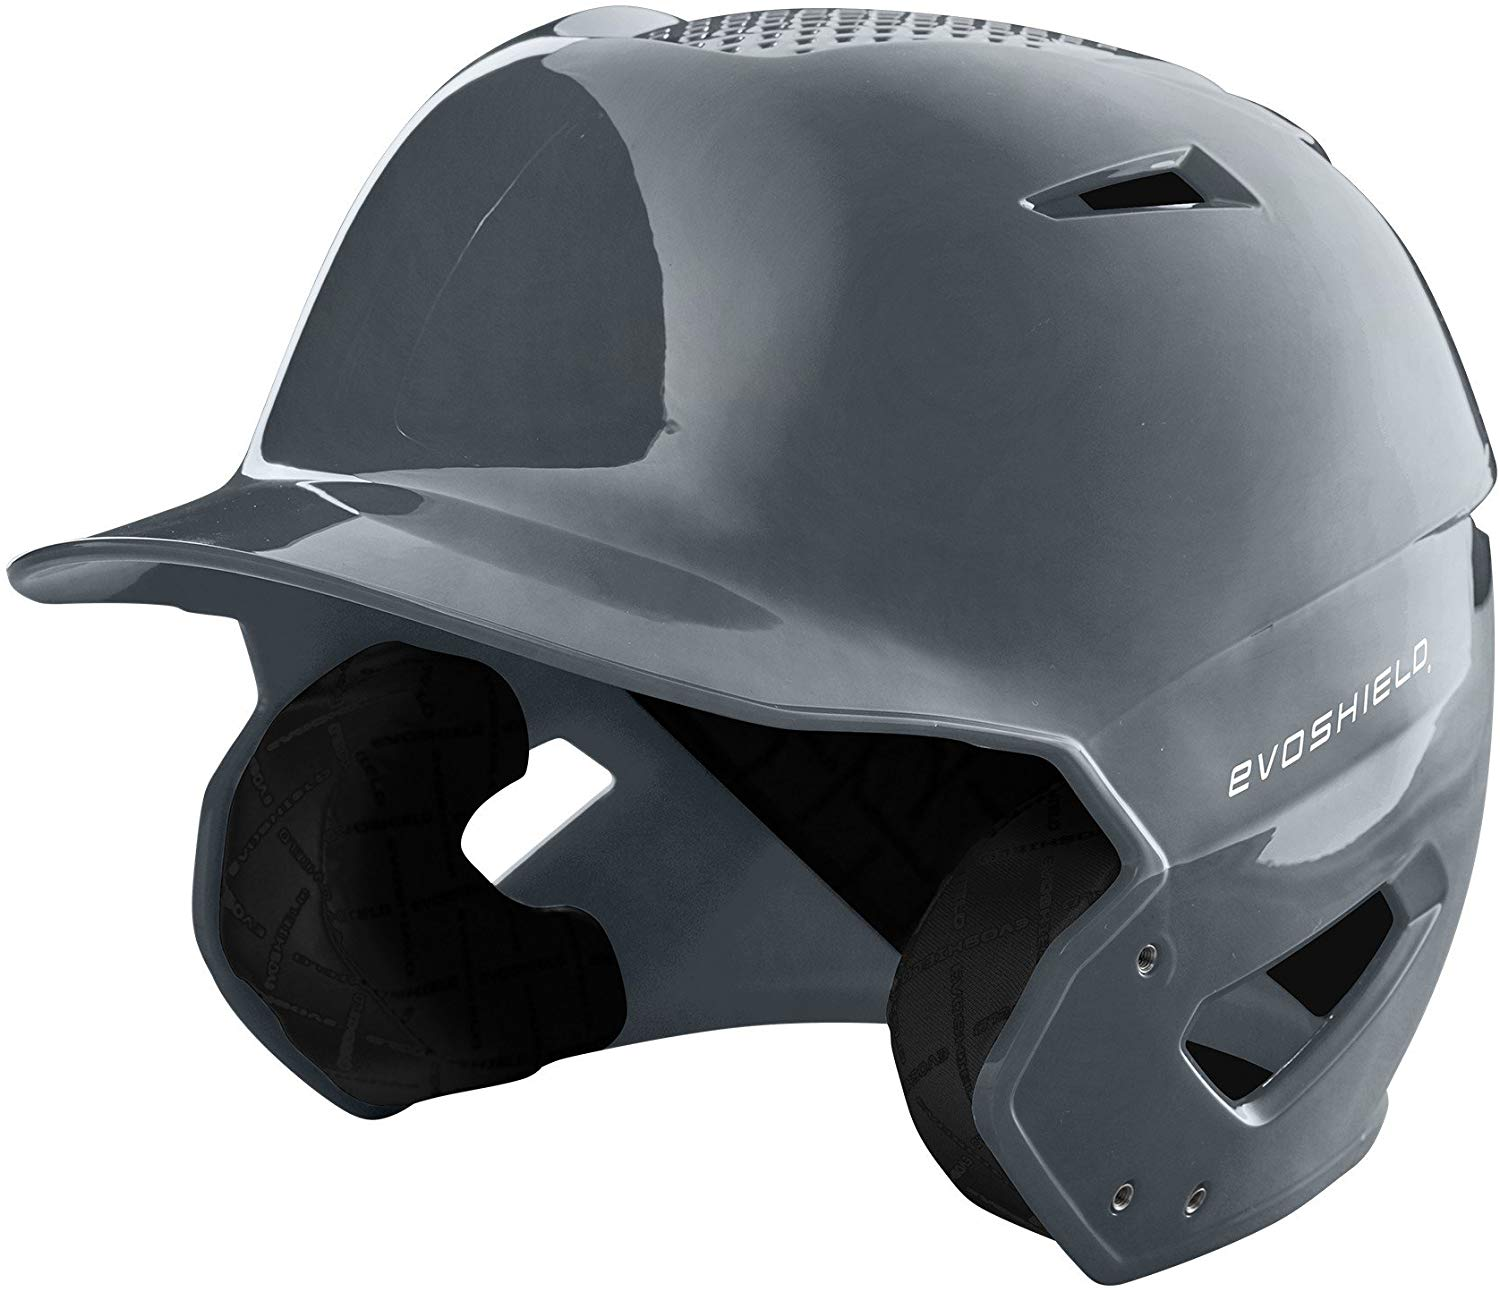 XVT Adult Helmet - 6 colours